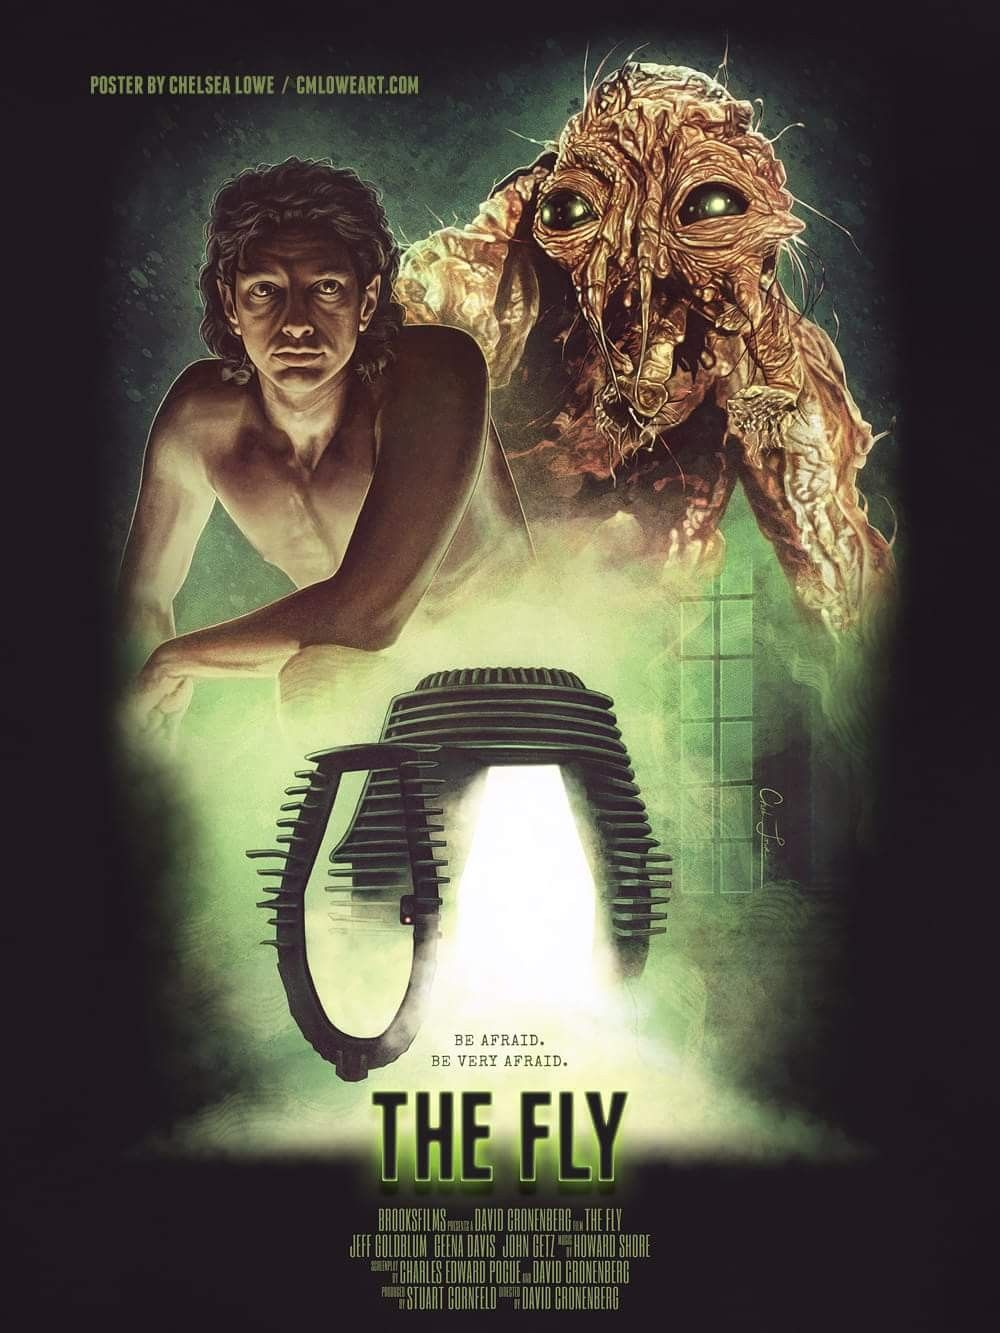 """Horror Movie Poster Art : """"The Fly"""" 1986, by Chelsea Lowe 